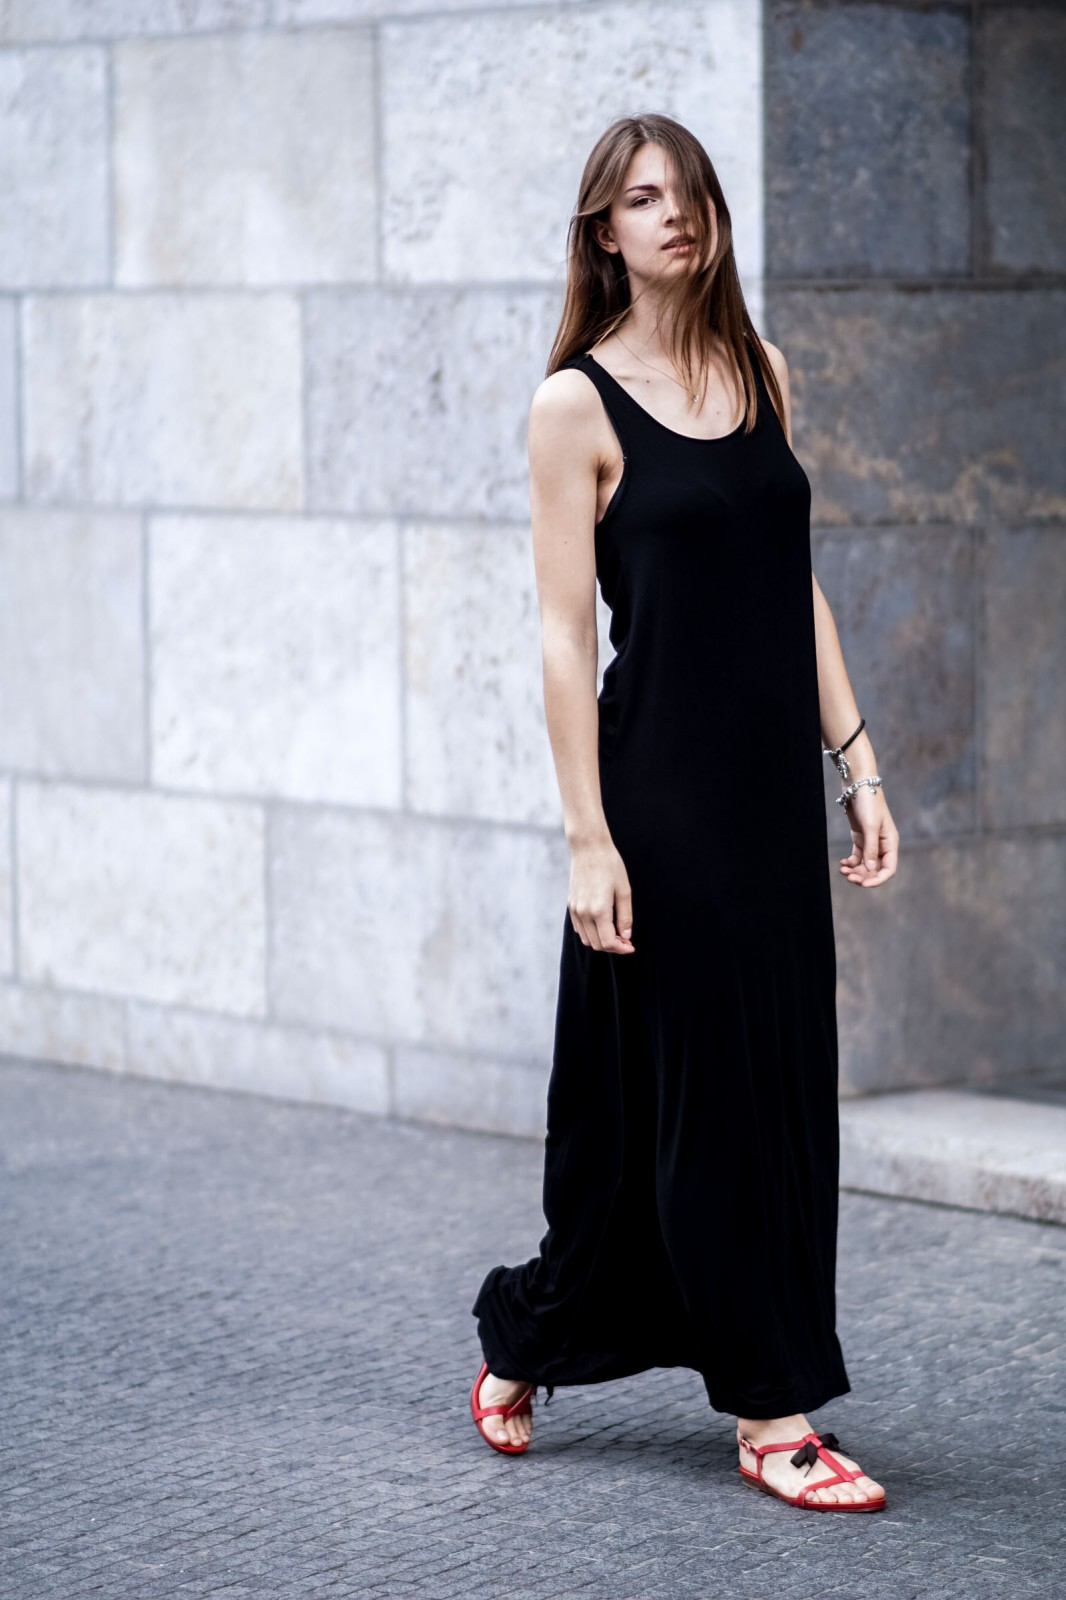 Black dress with touch of red - Fashionblog Berlin Black Maxi Dress